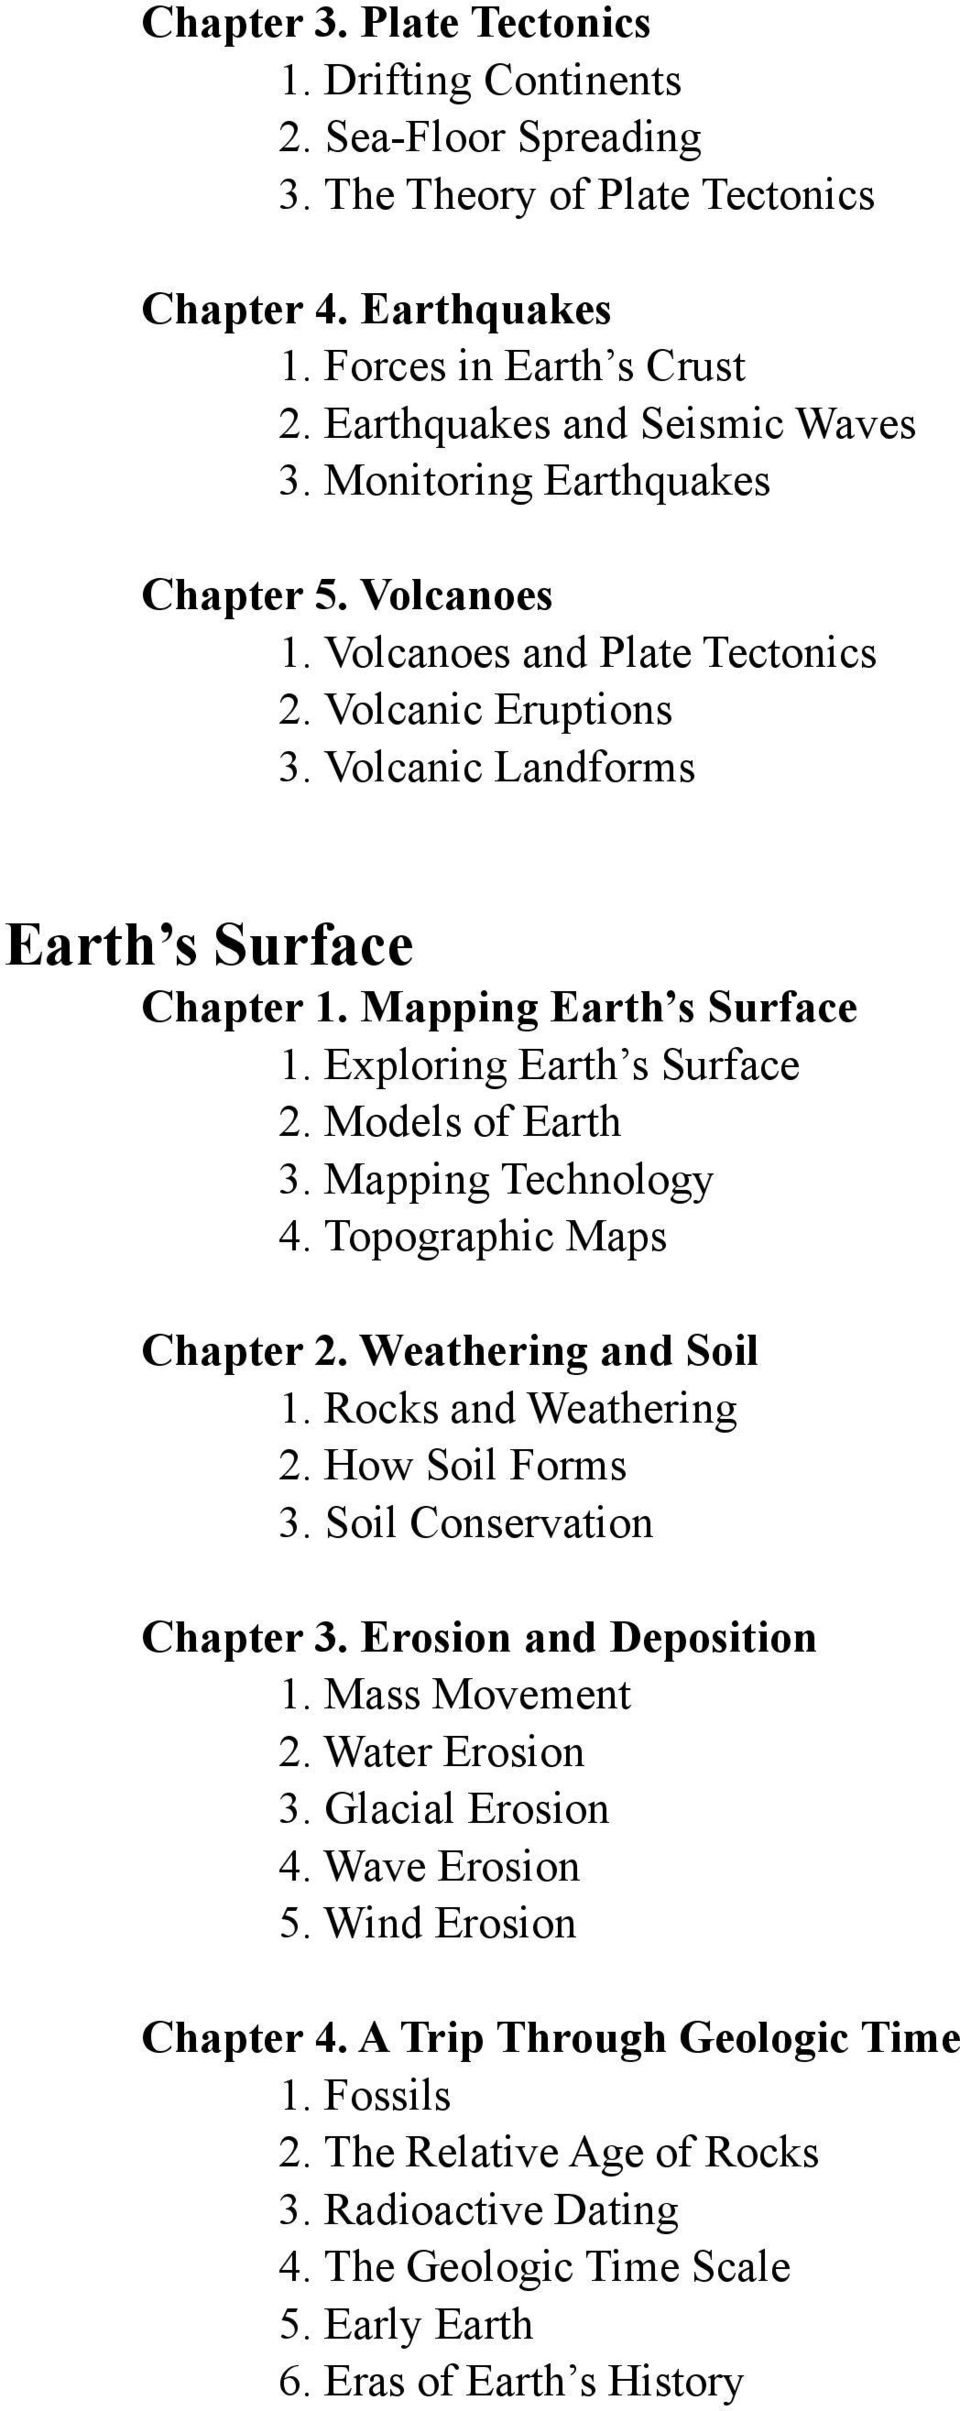 Exploring Earth s Surface 2. Models of Earth 3. Mapping Technology 4. Topographic Maps Chapter 2. Weathering and Soil 1. Rocks and Weathering 2. How Soil Forms 3. Soil Conservation Chapter 3.